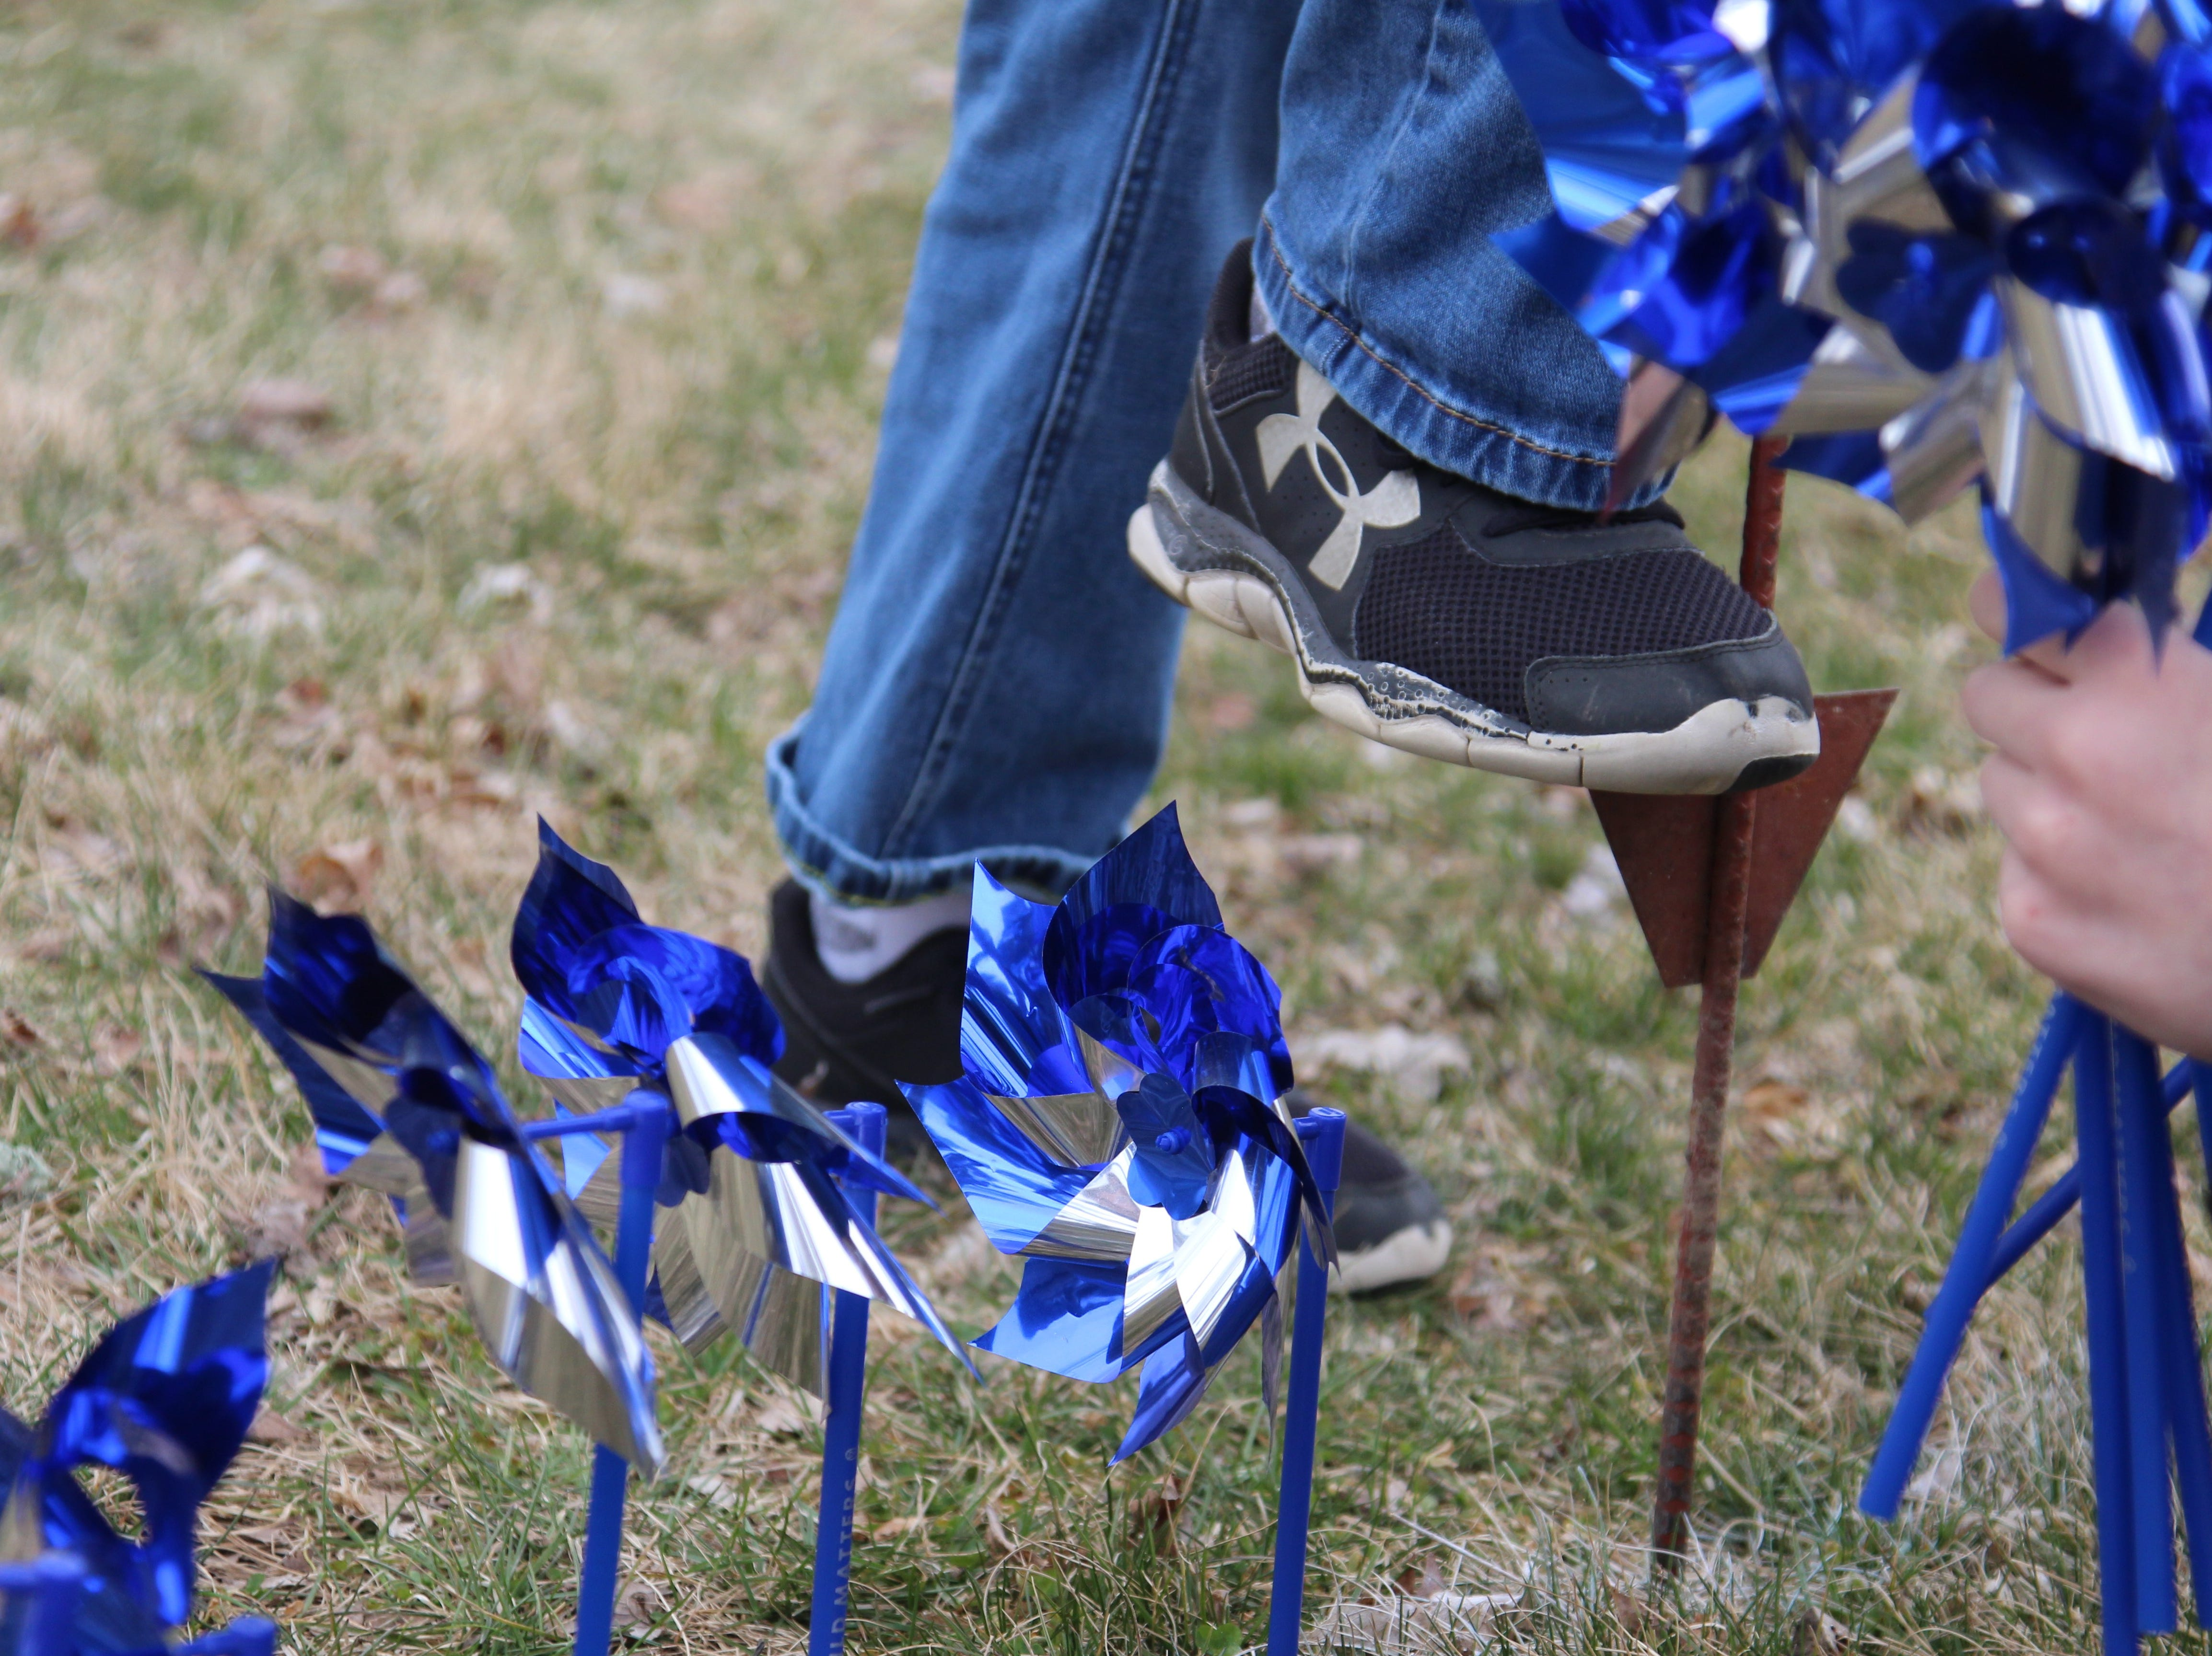 Volunteers planted over 900 pinwheels in front of Marion County Children Services last year with each representing a report of neglect or abuse in the area.  Bryant Brown, the community education coordinator for the agency, said the number of pinwheels planted each year continues to increase.